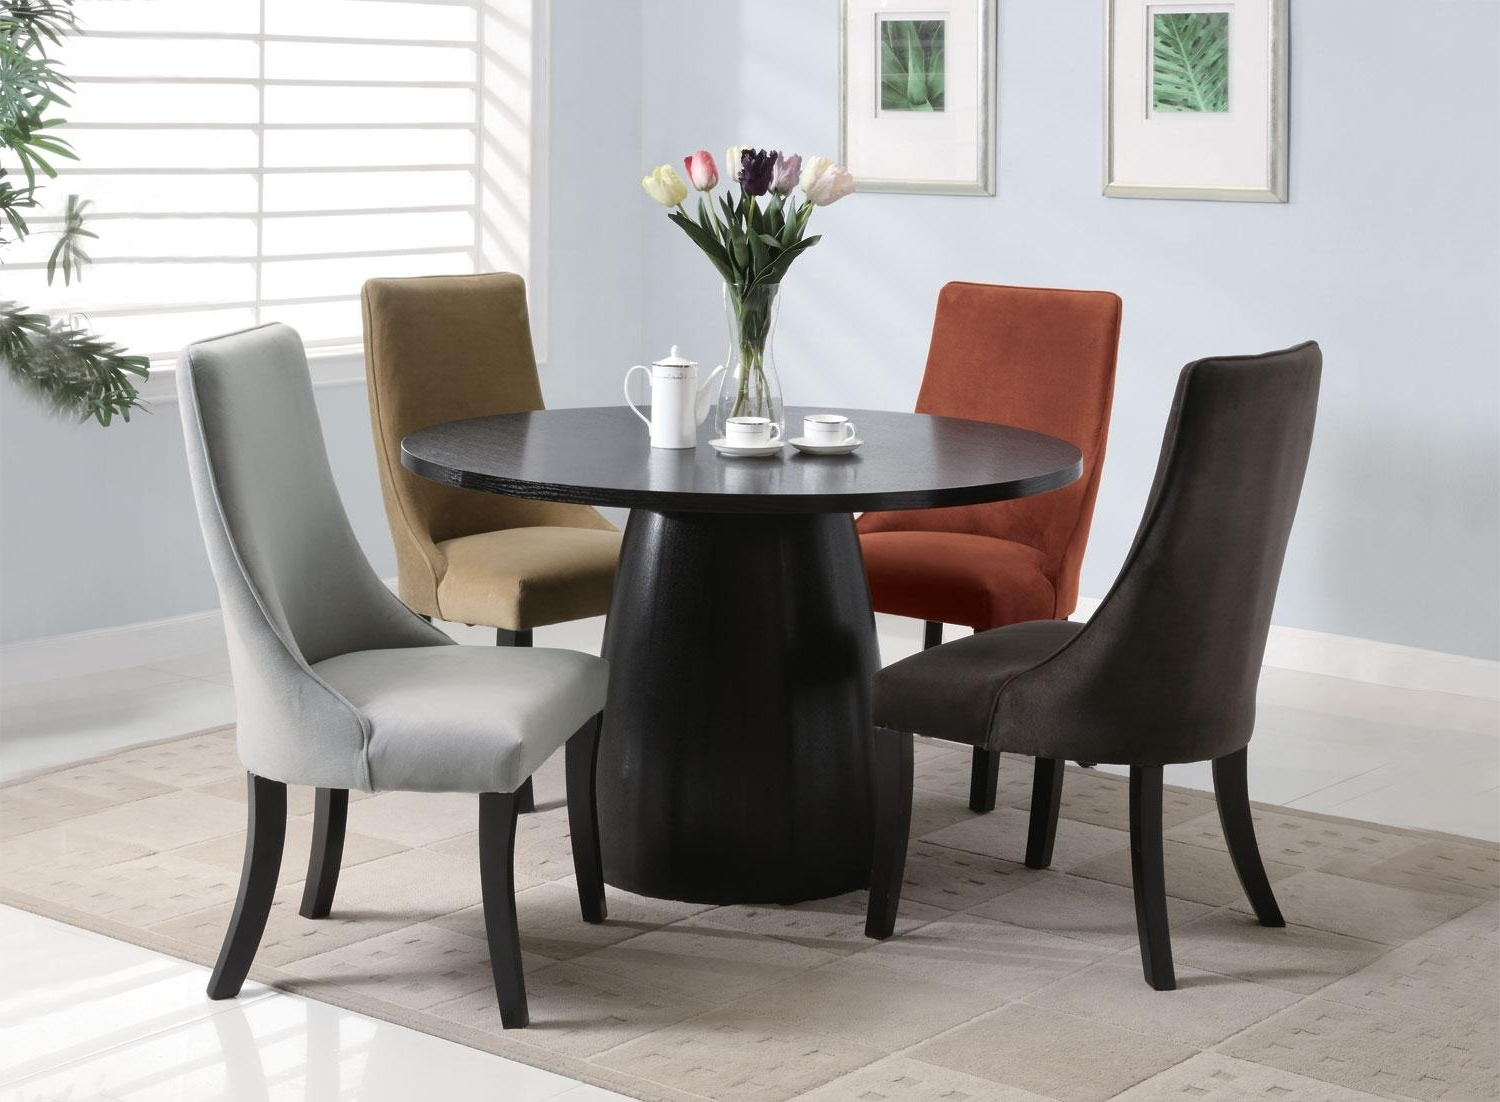 Lumen Home Designslumen Home Designs In Most Recently Released Modern Dining Tables And Chairs (View 9 of 25)